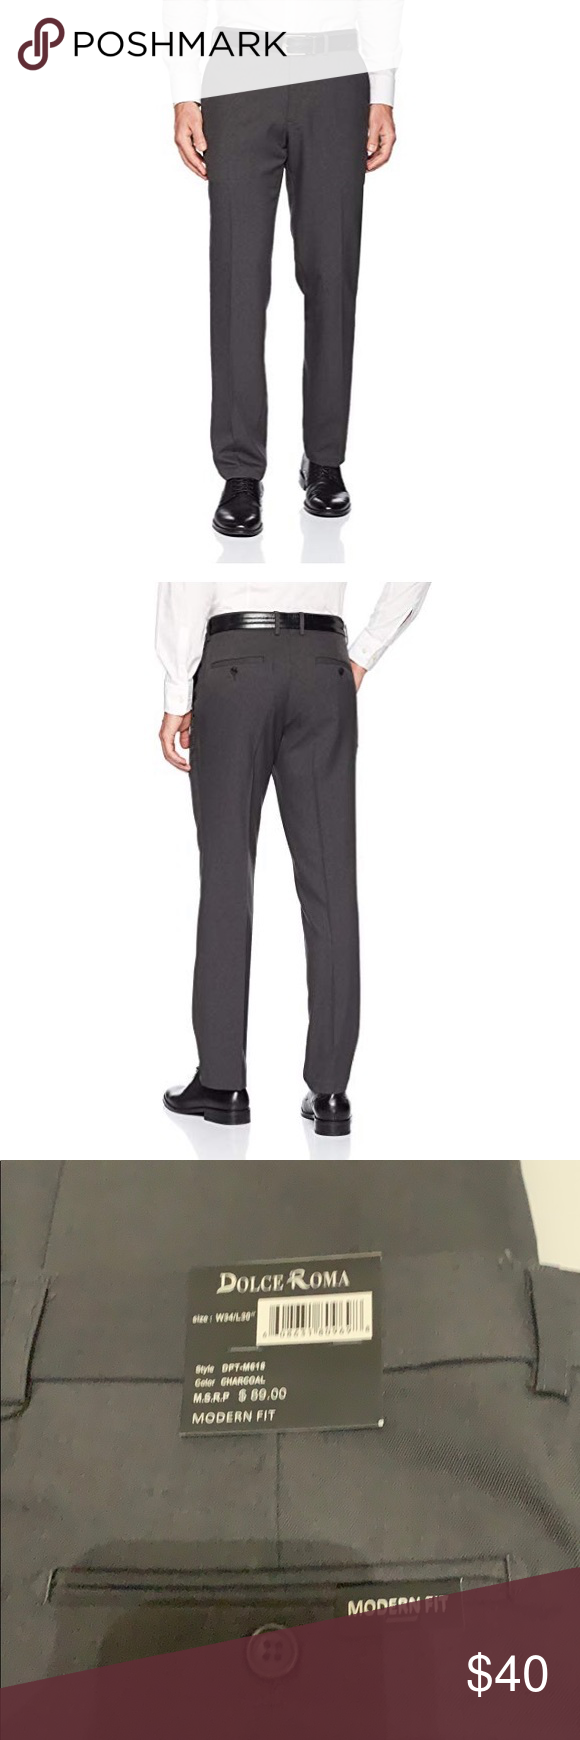 Dolce Roma Modern Fit Solid Dress Pants Charcoal Modern Fit Dress Pants Dress Pant [ 1740 x 580 Pixel ]